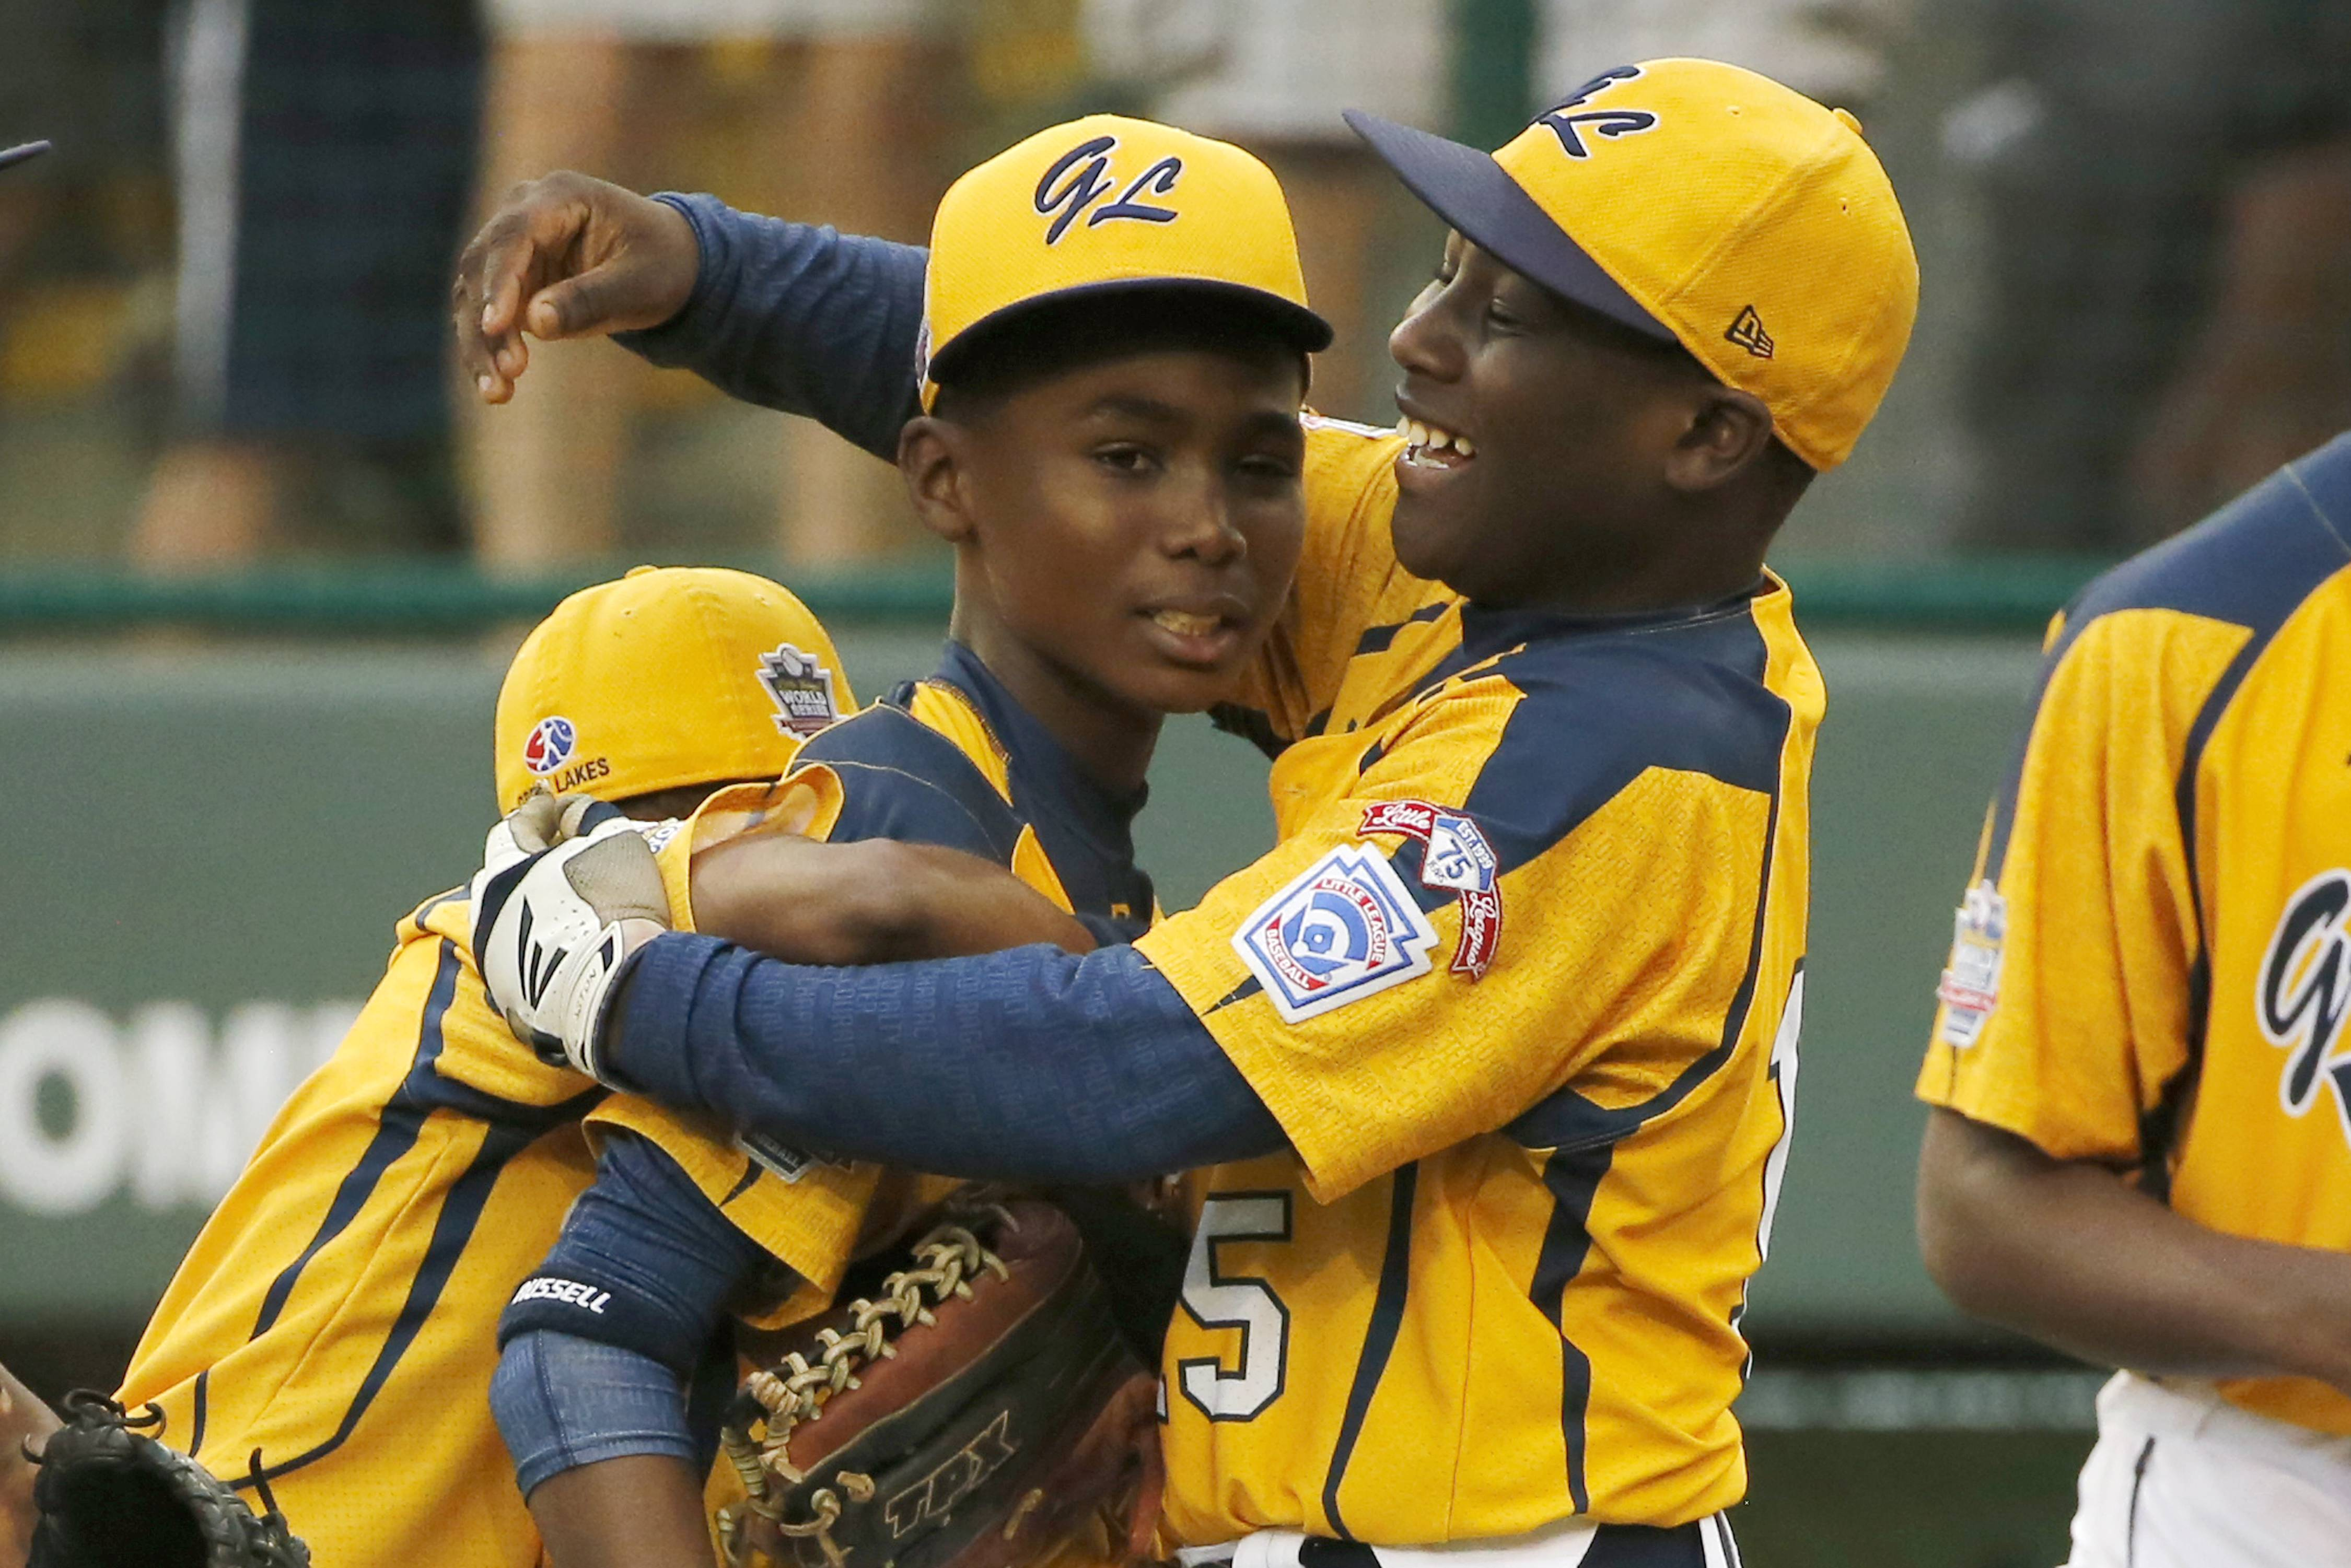 Chicago's Joshua Houston, right, embraces Ed Howard after a 7-6 win in the U.S. final against Las Vegas on Saturday at the Little League World Series in South Williamsport, Pa.